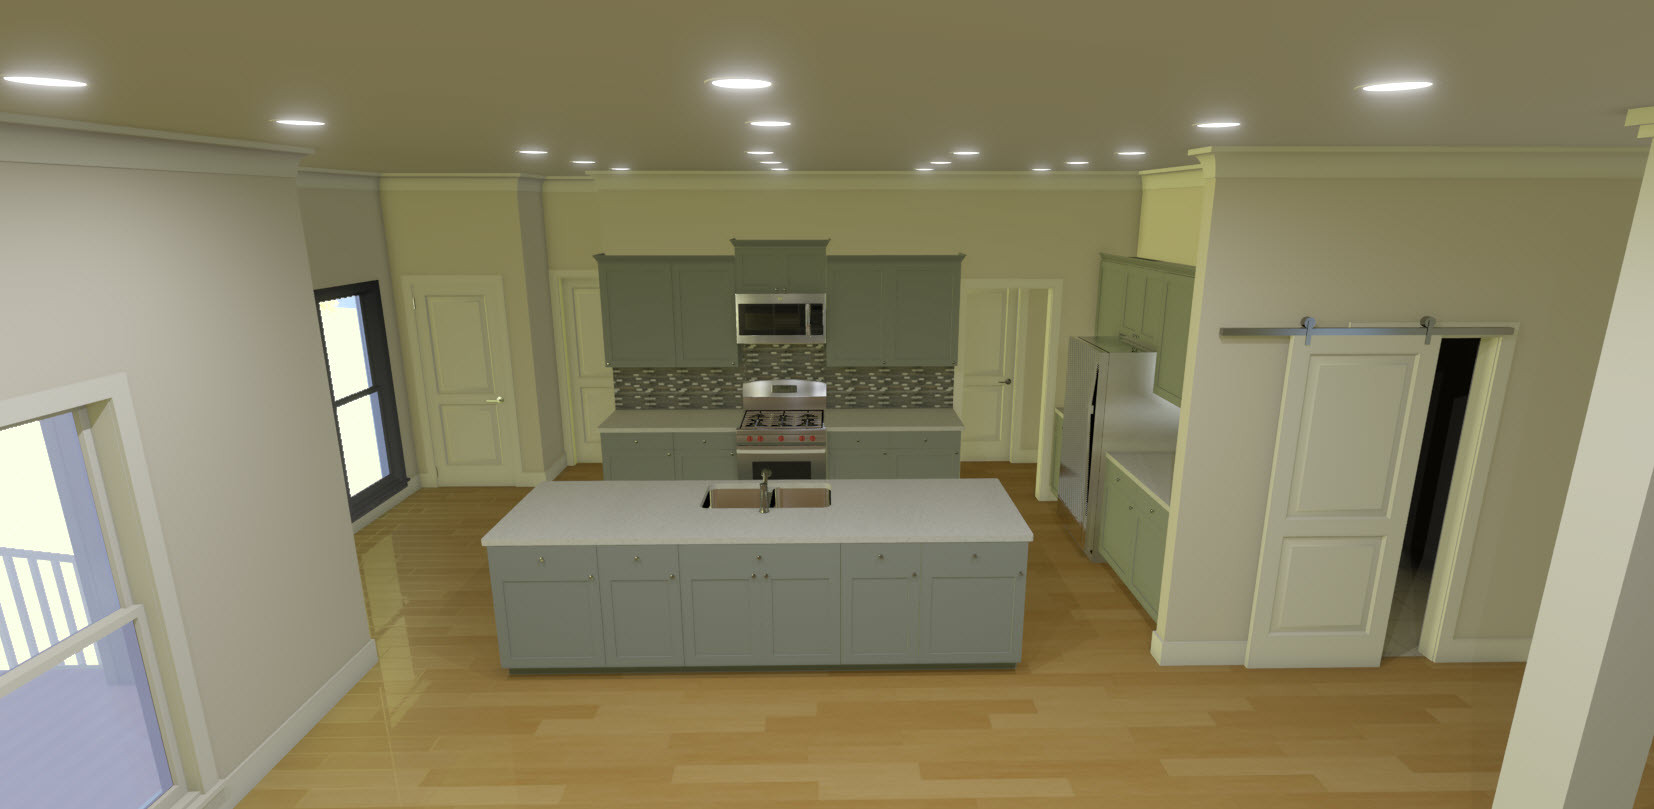 Interior 3d - Website Image - 2.jpg